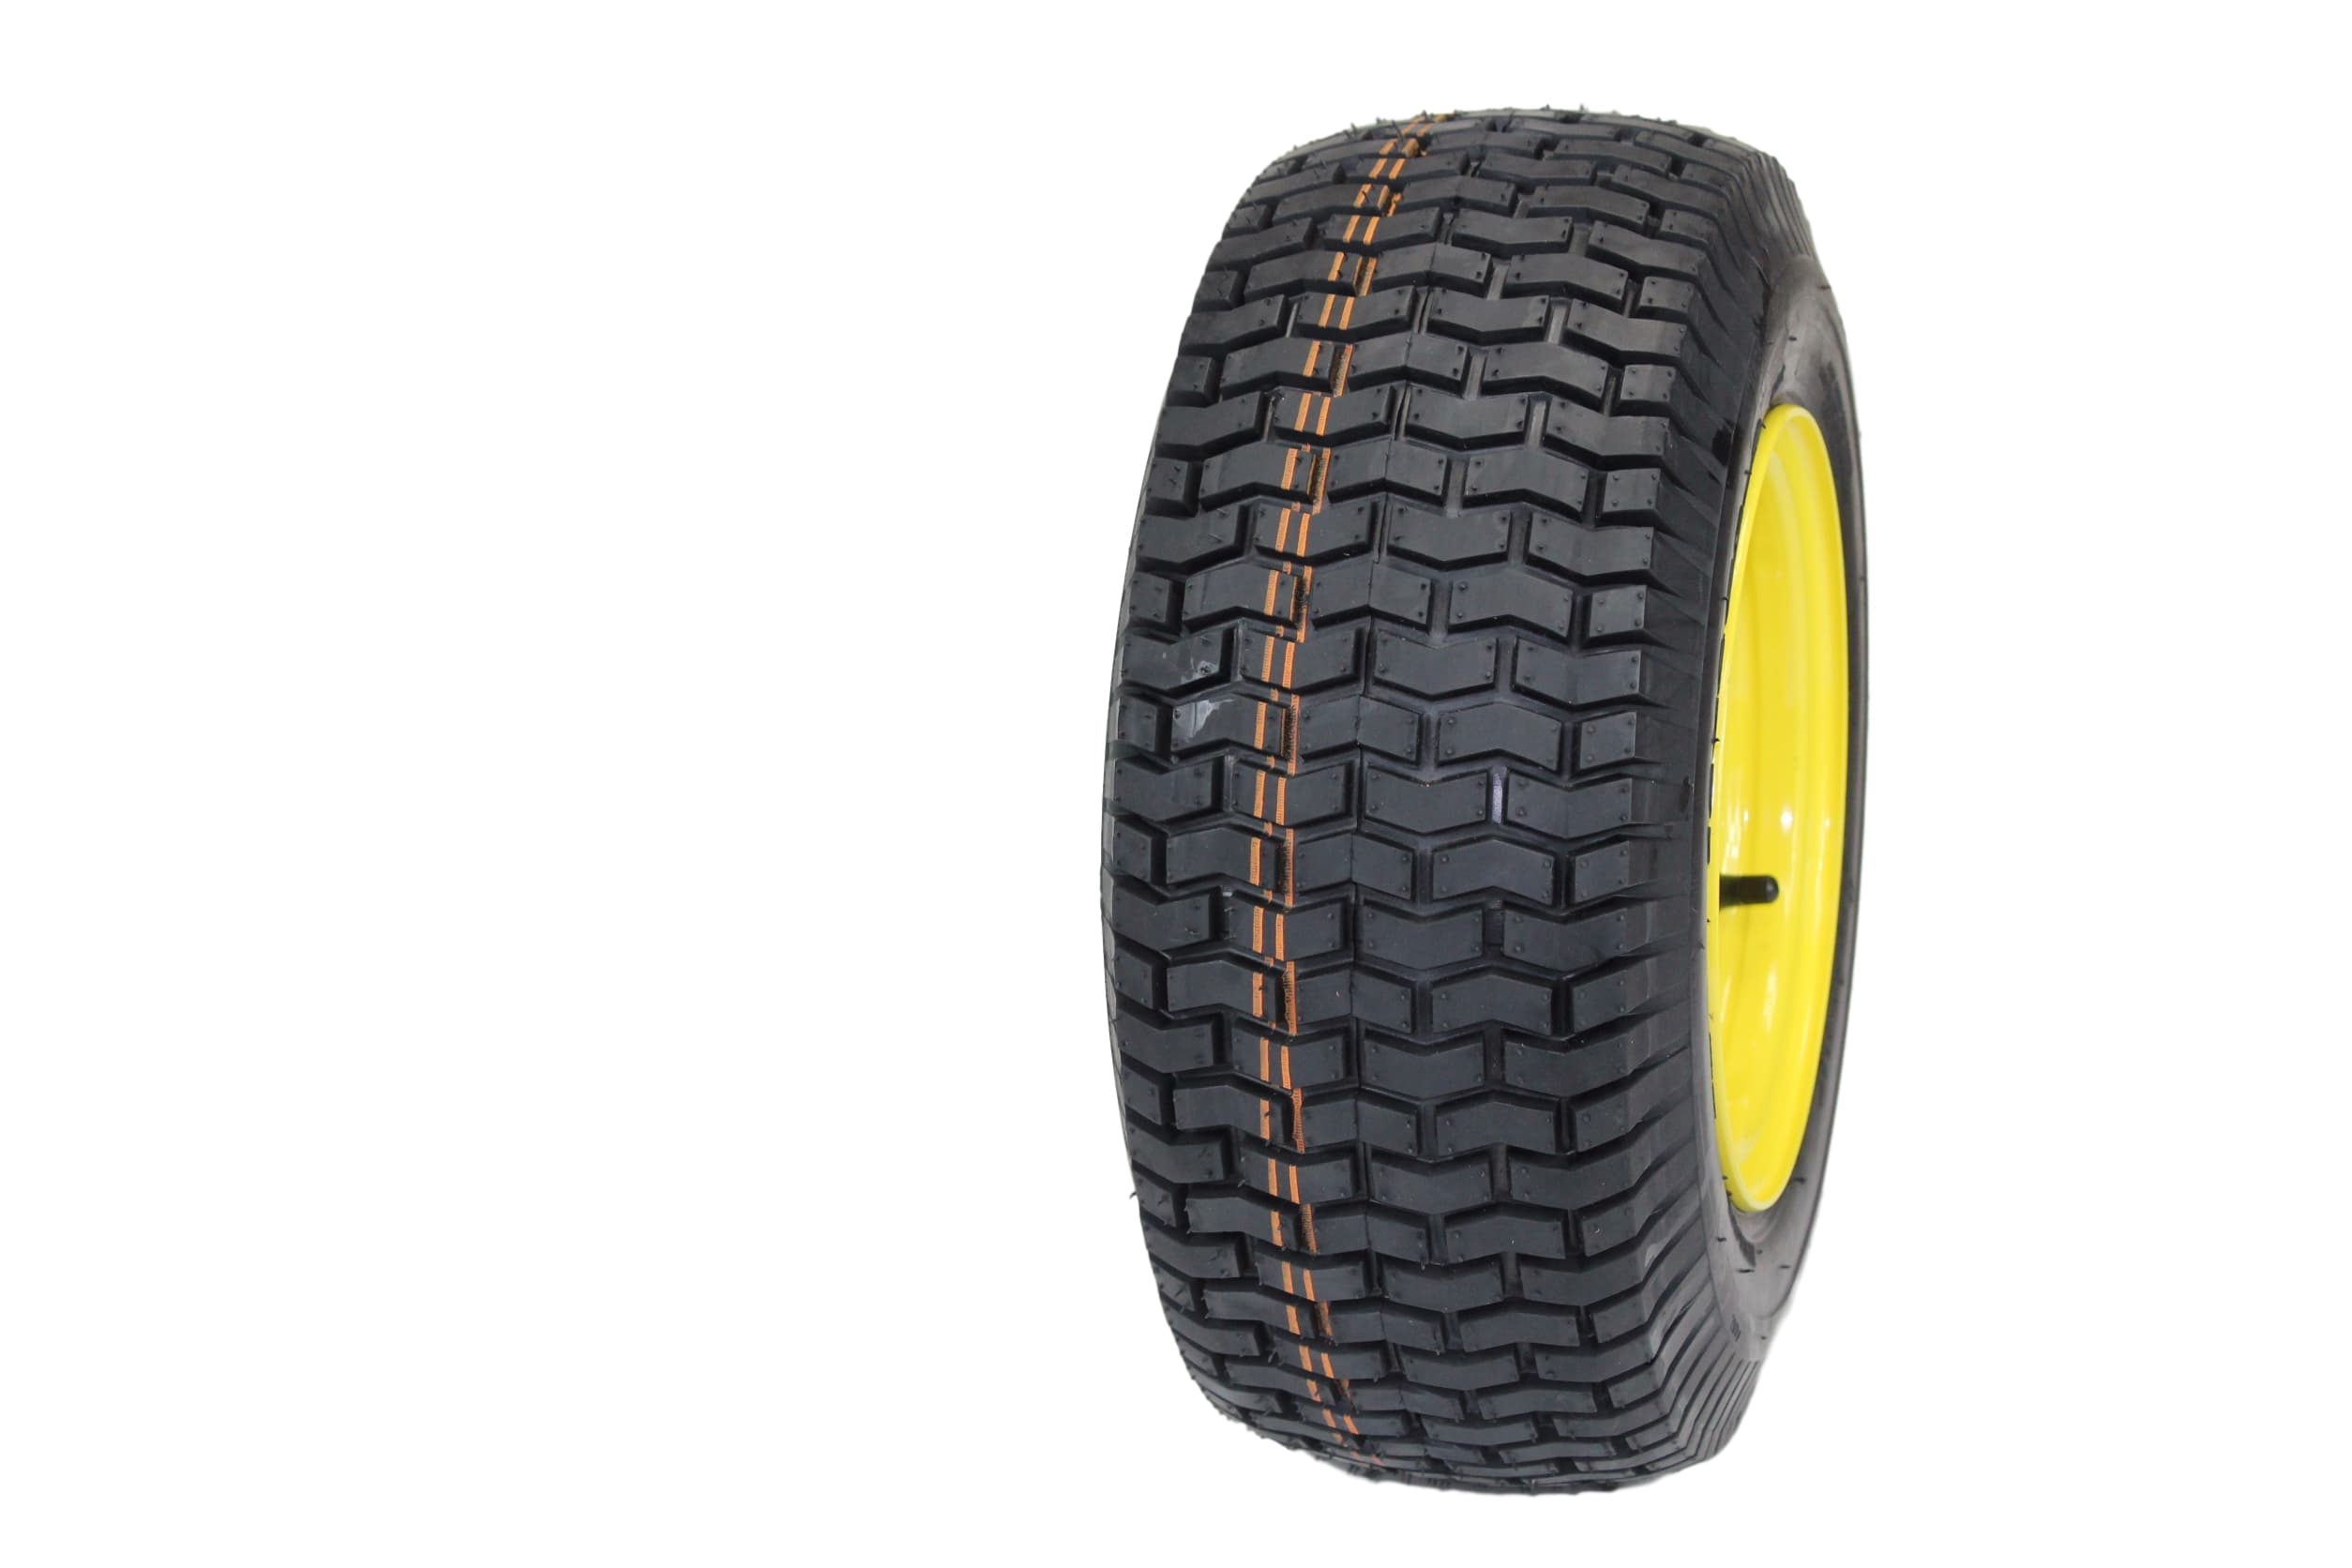 16x6.50-8 Tires /& Wheels 4 Ply for Lawn /& Garden Mower Turf Tires ... Set of 2